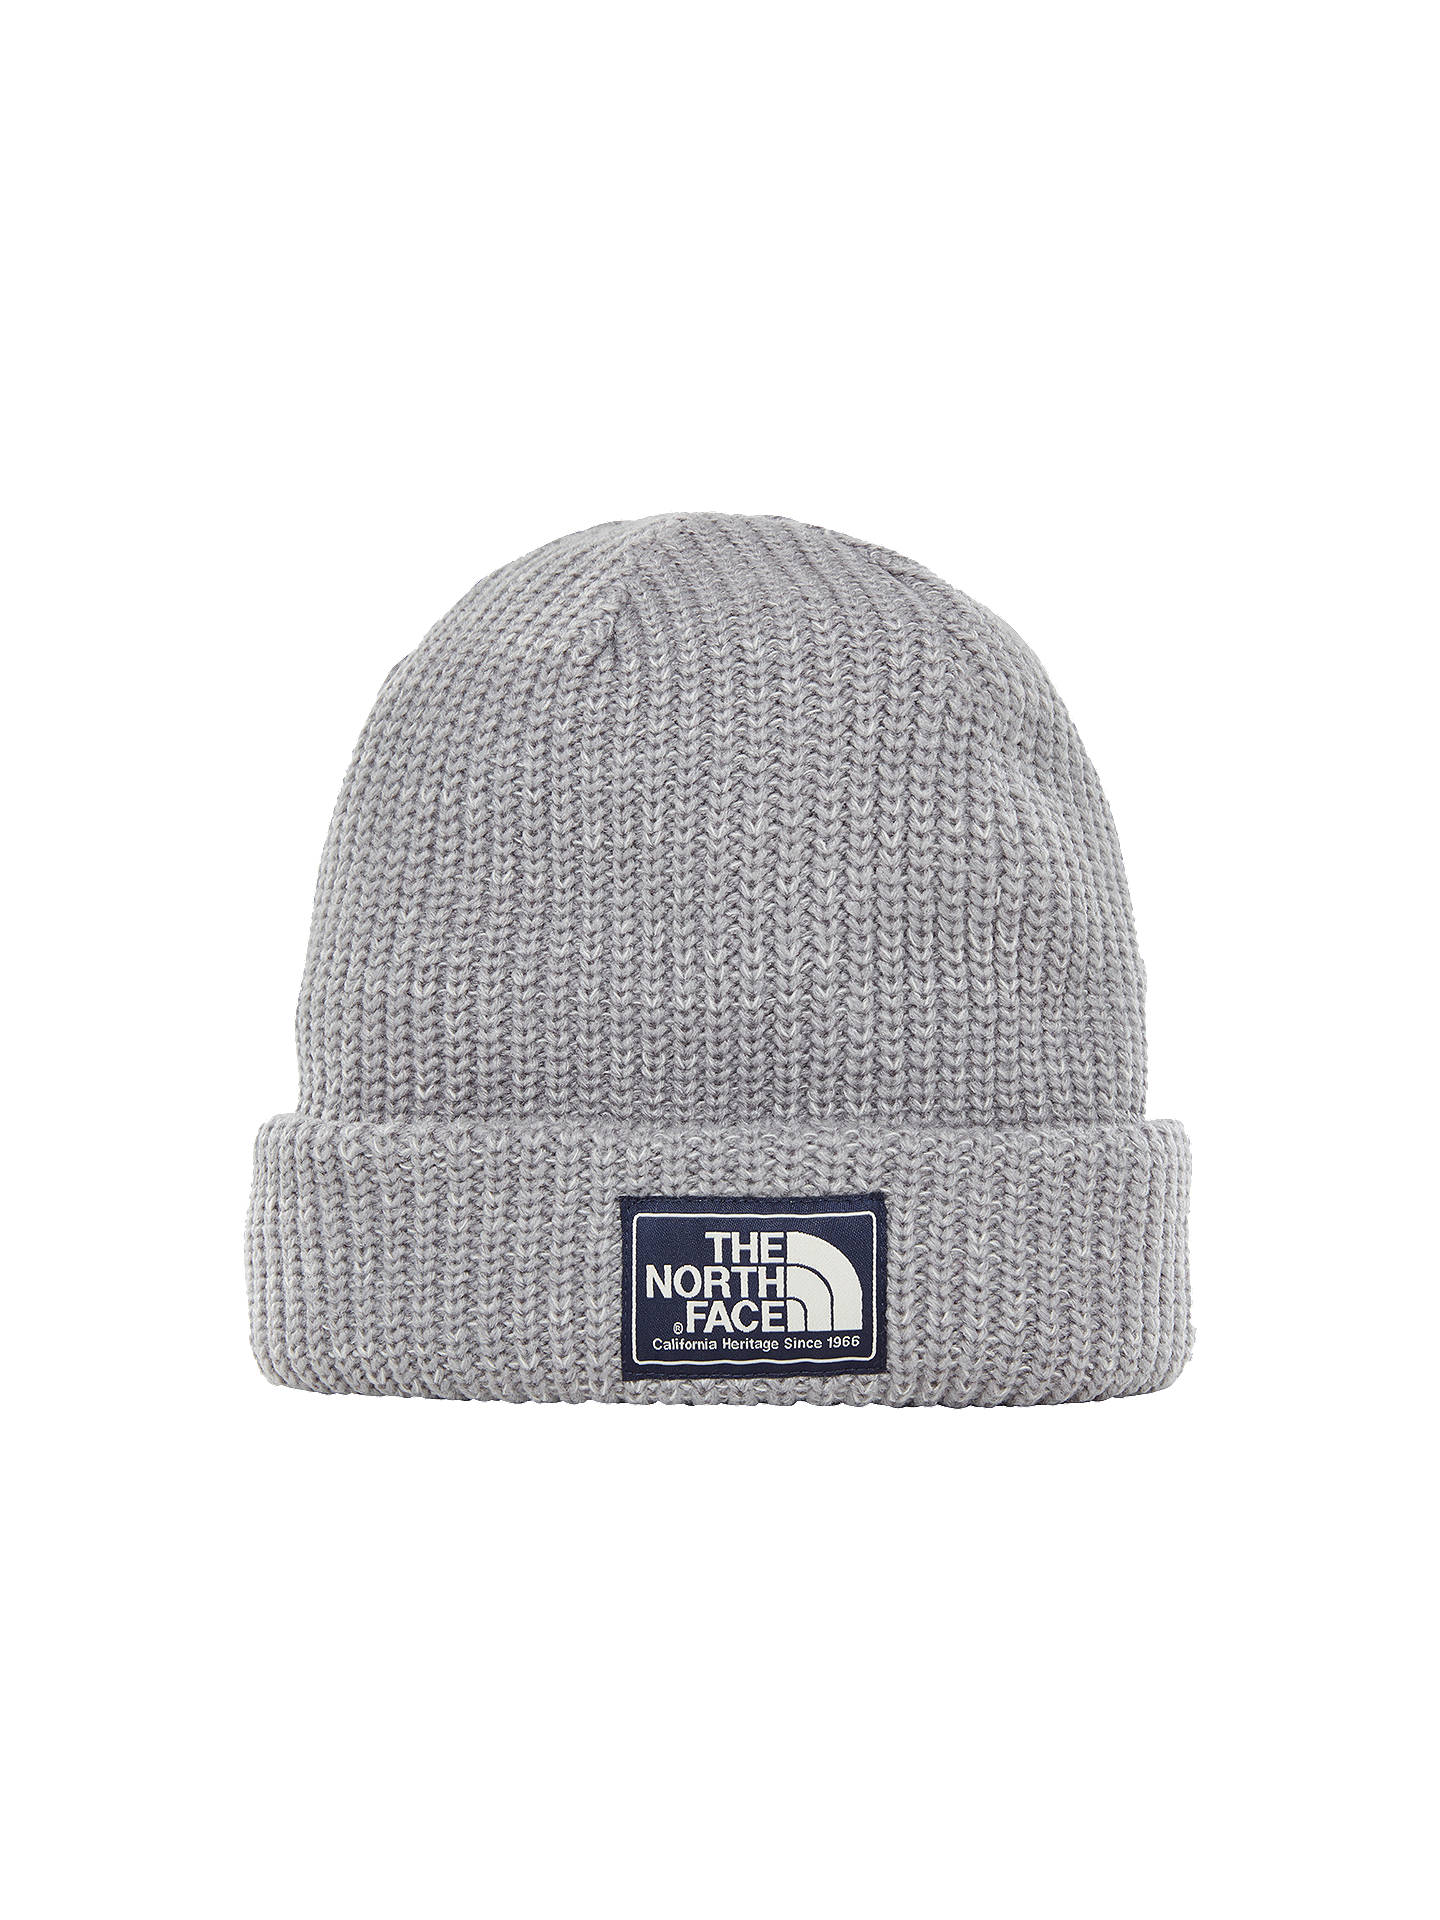 605bec12bb7 The North Face Salty Dog Beanie at John Lewis   Partners